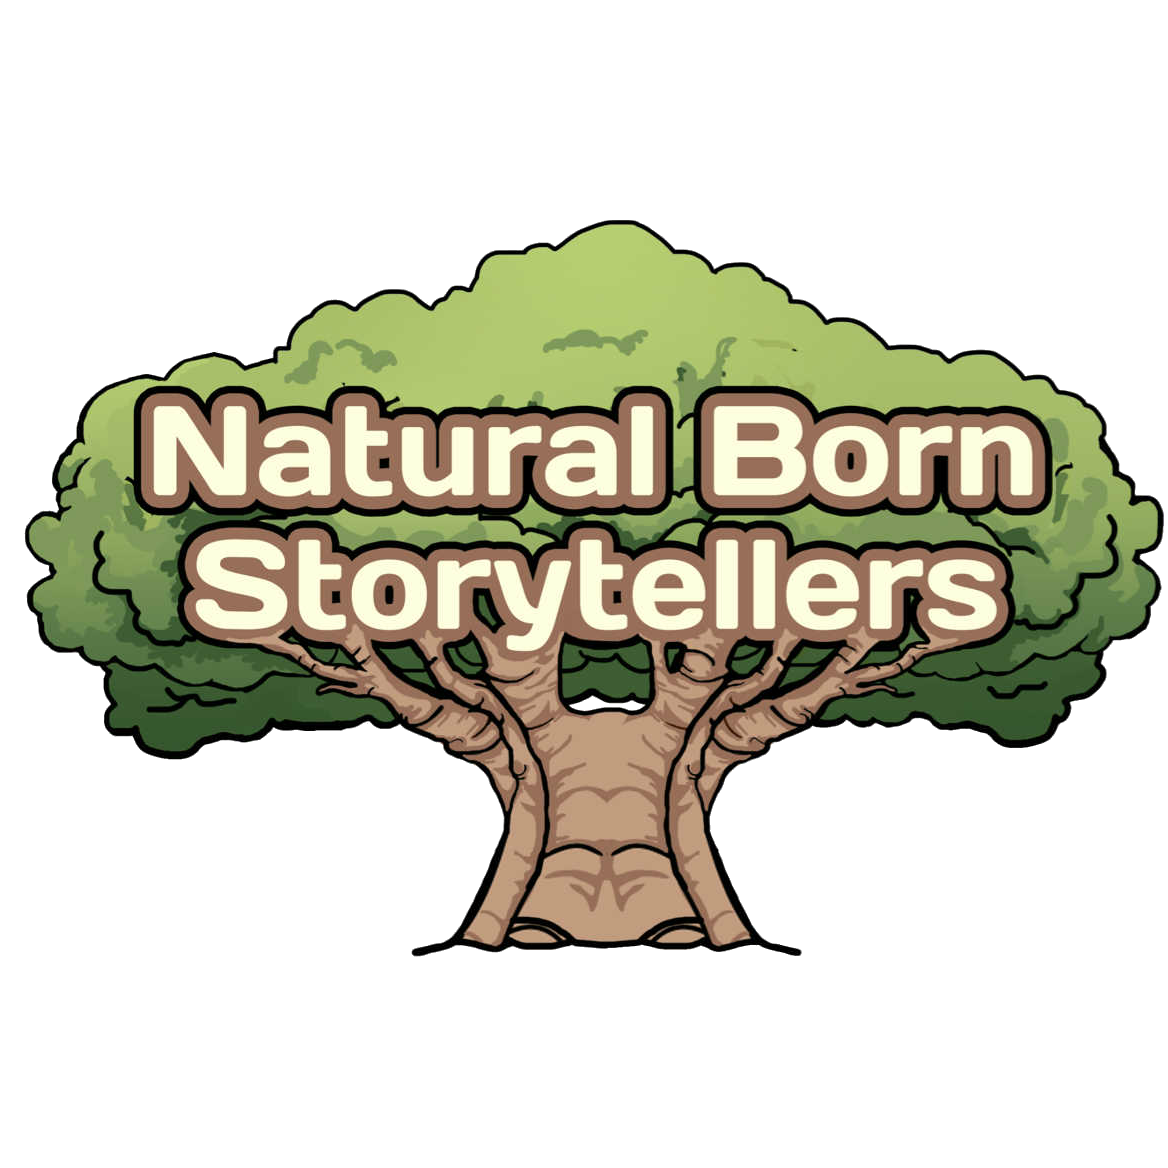 Natural Born Storytellers